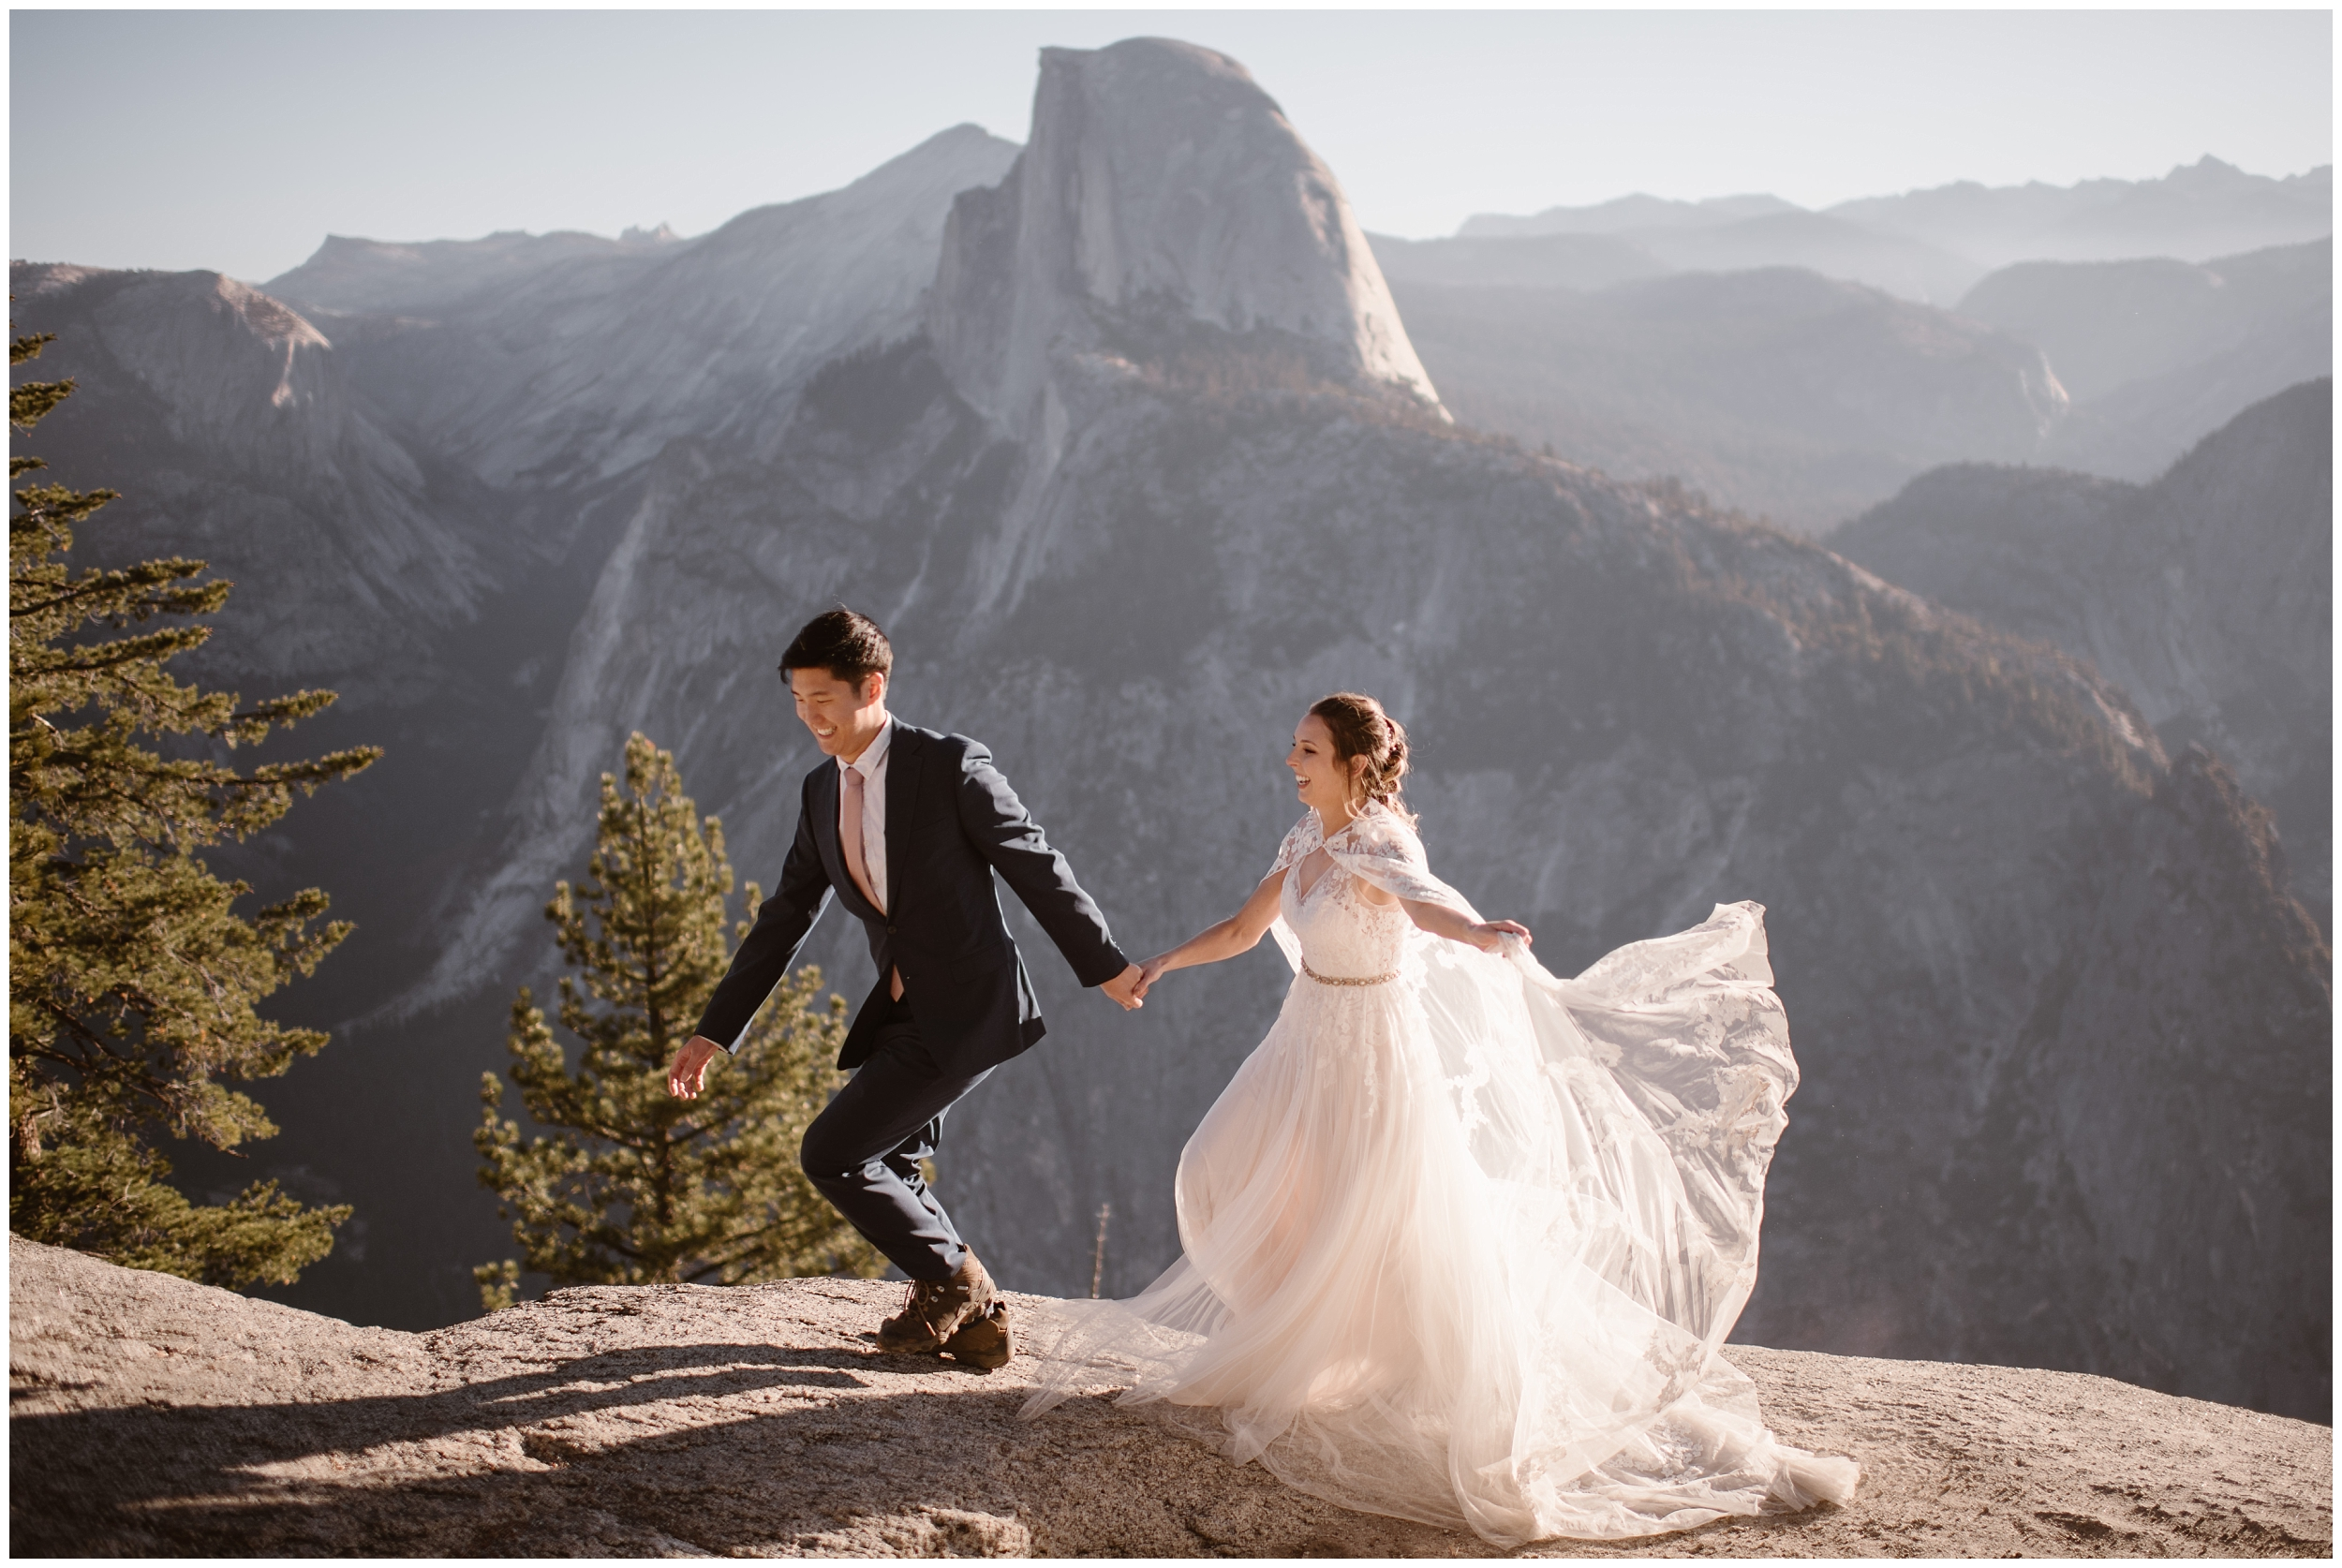 A bride and groom take hands and run on the side of a mountainous cliff in Yosemite National Park. A Yosemite National Park elopement was one of this couple's ideal small wedding ideas. That's one of the benefits of eloping—you can pick any location you want!